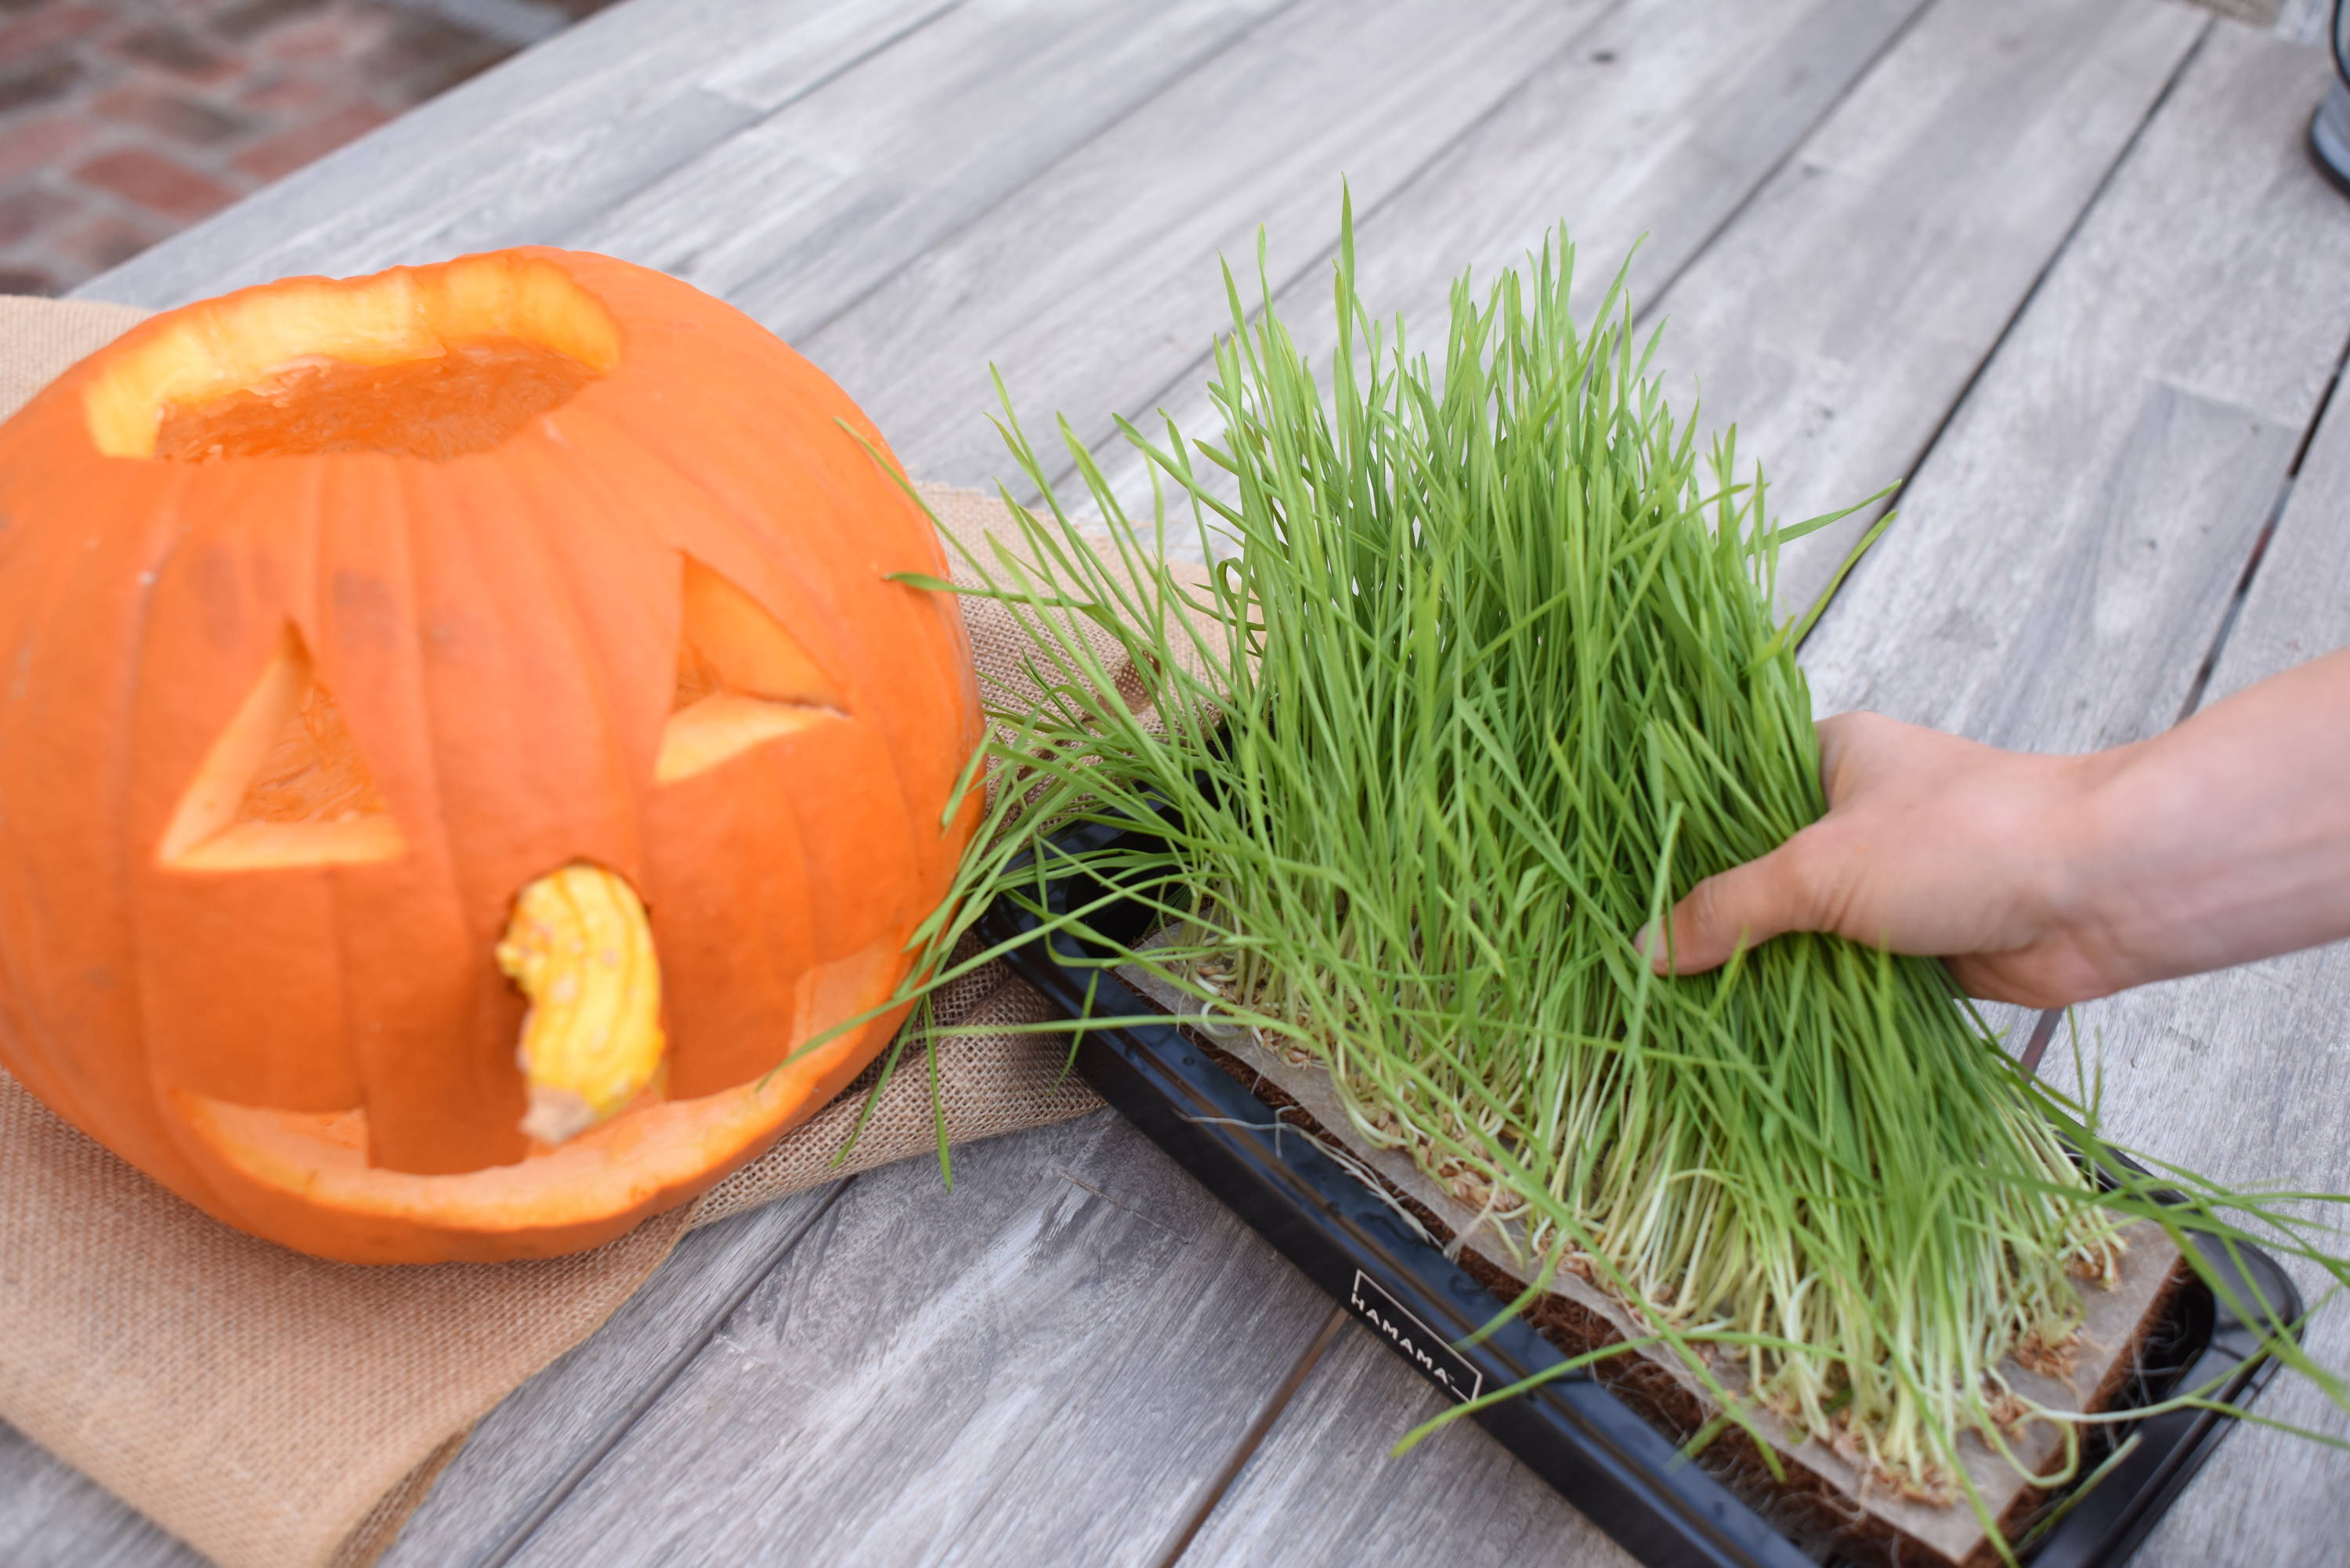 Fully grown homegrown wheatgrass in a grow tray next to a carved pumpkin jack-o-lantern.